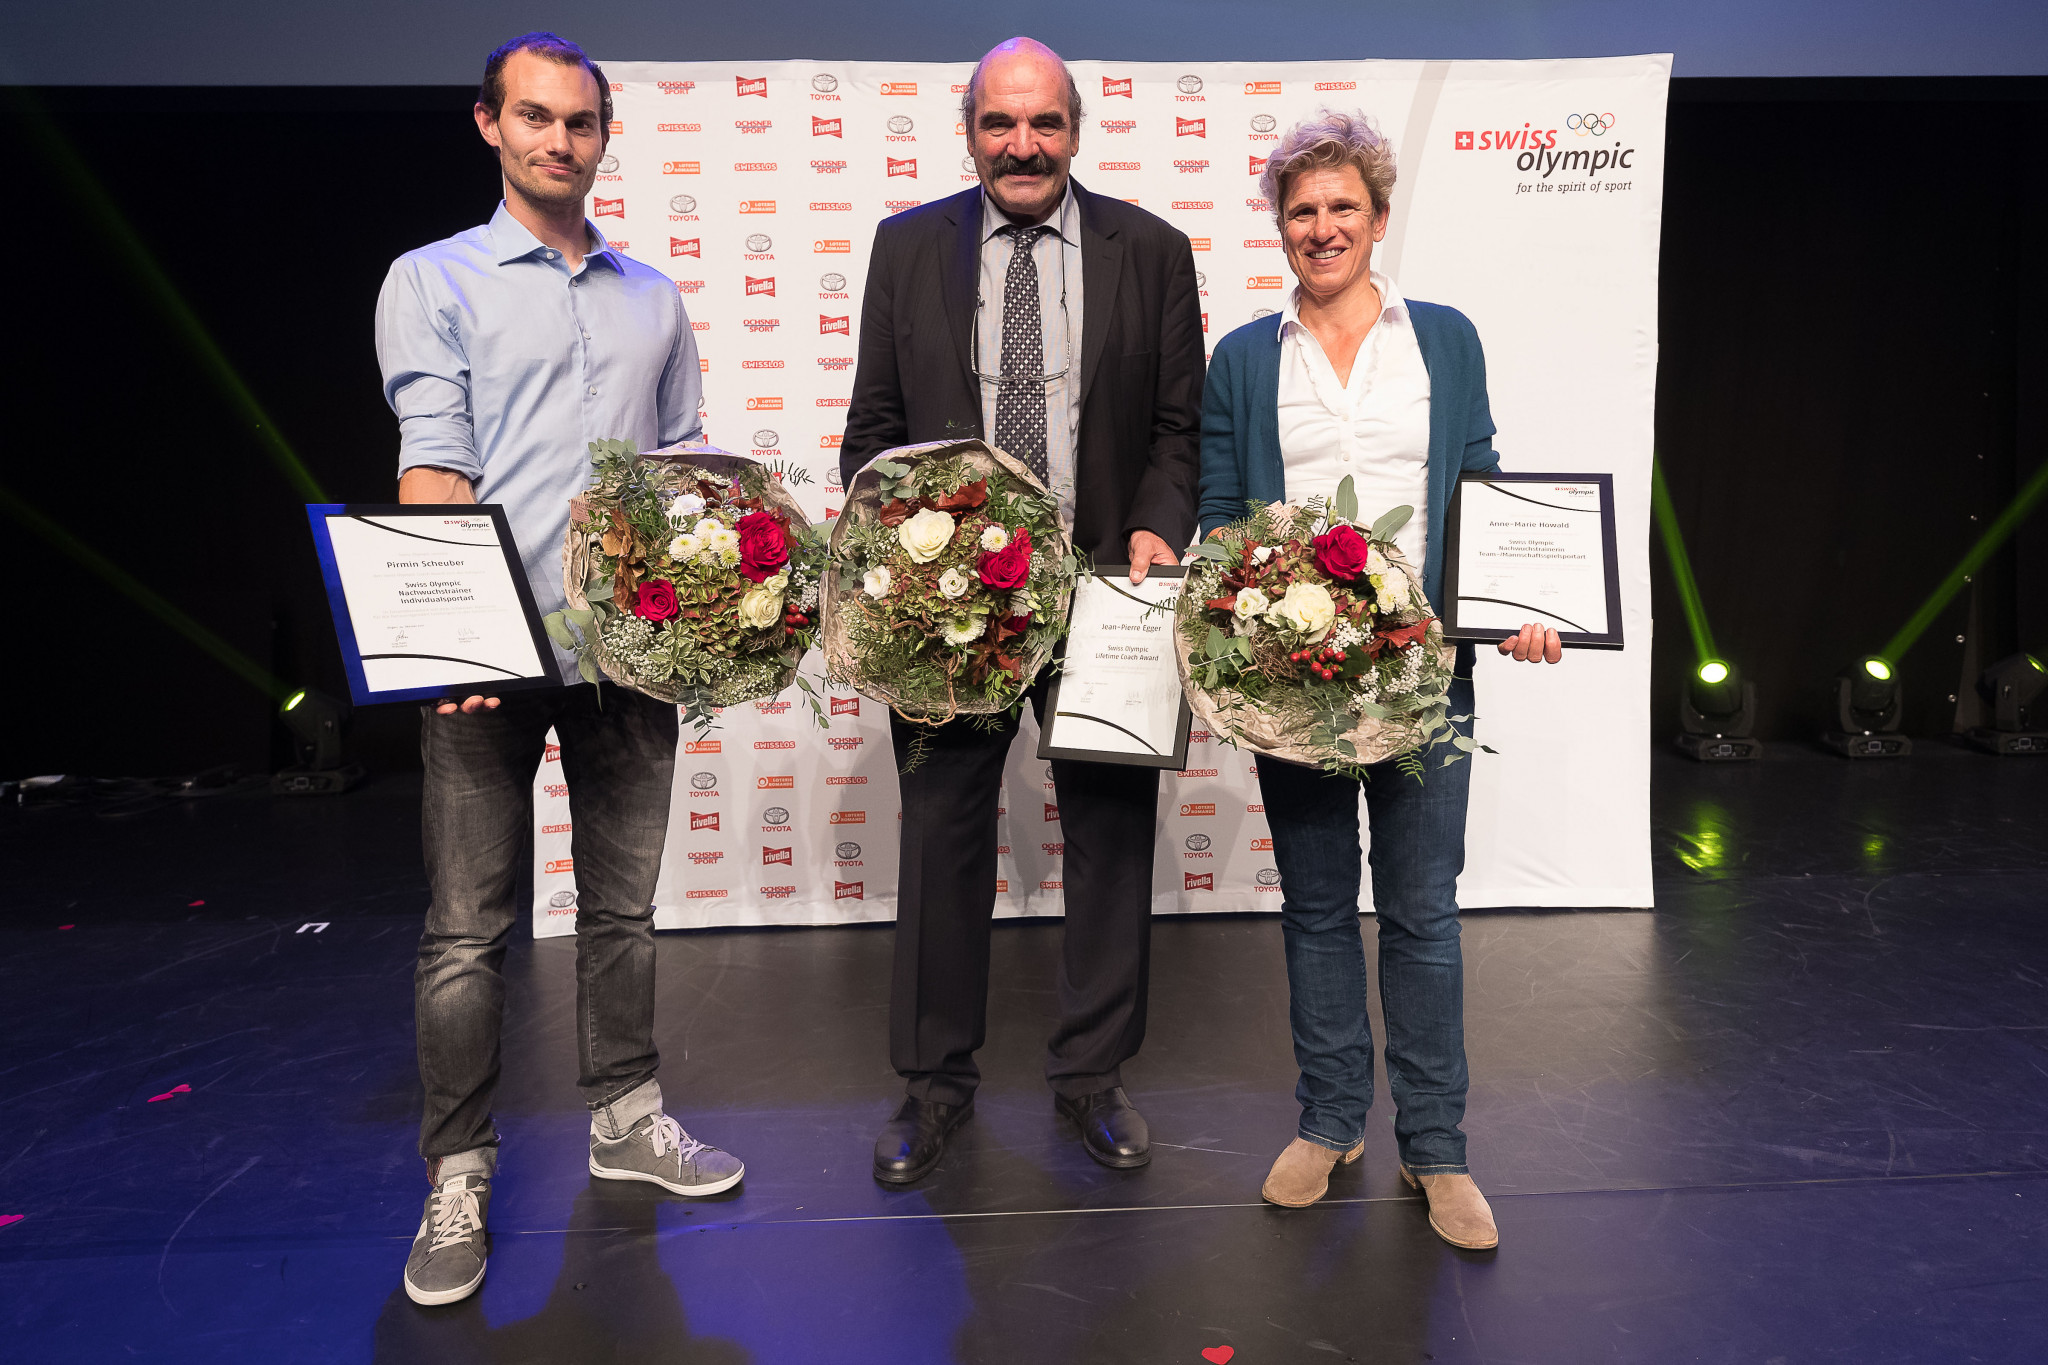 Swiss Olympic has named its Coach of the Year award winners ©Swiss Olympic